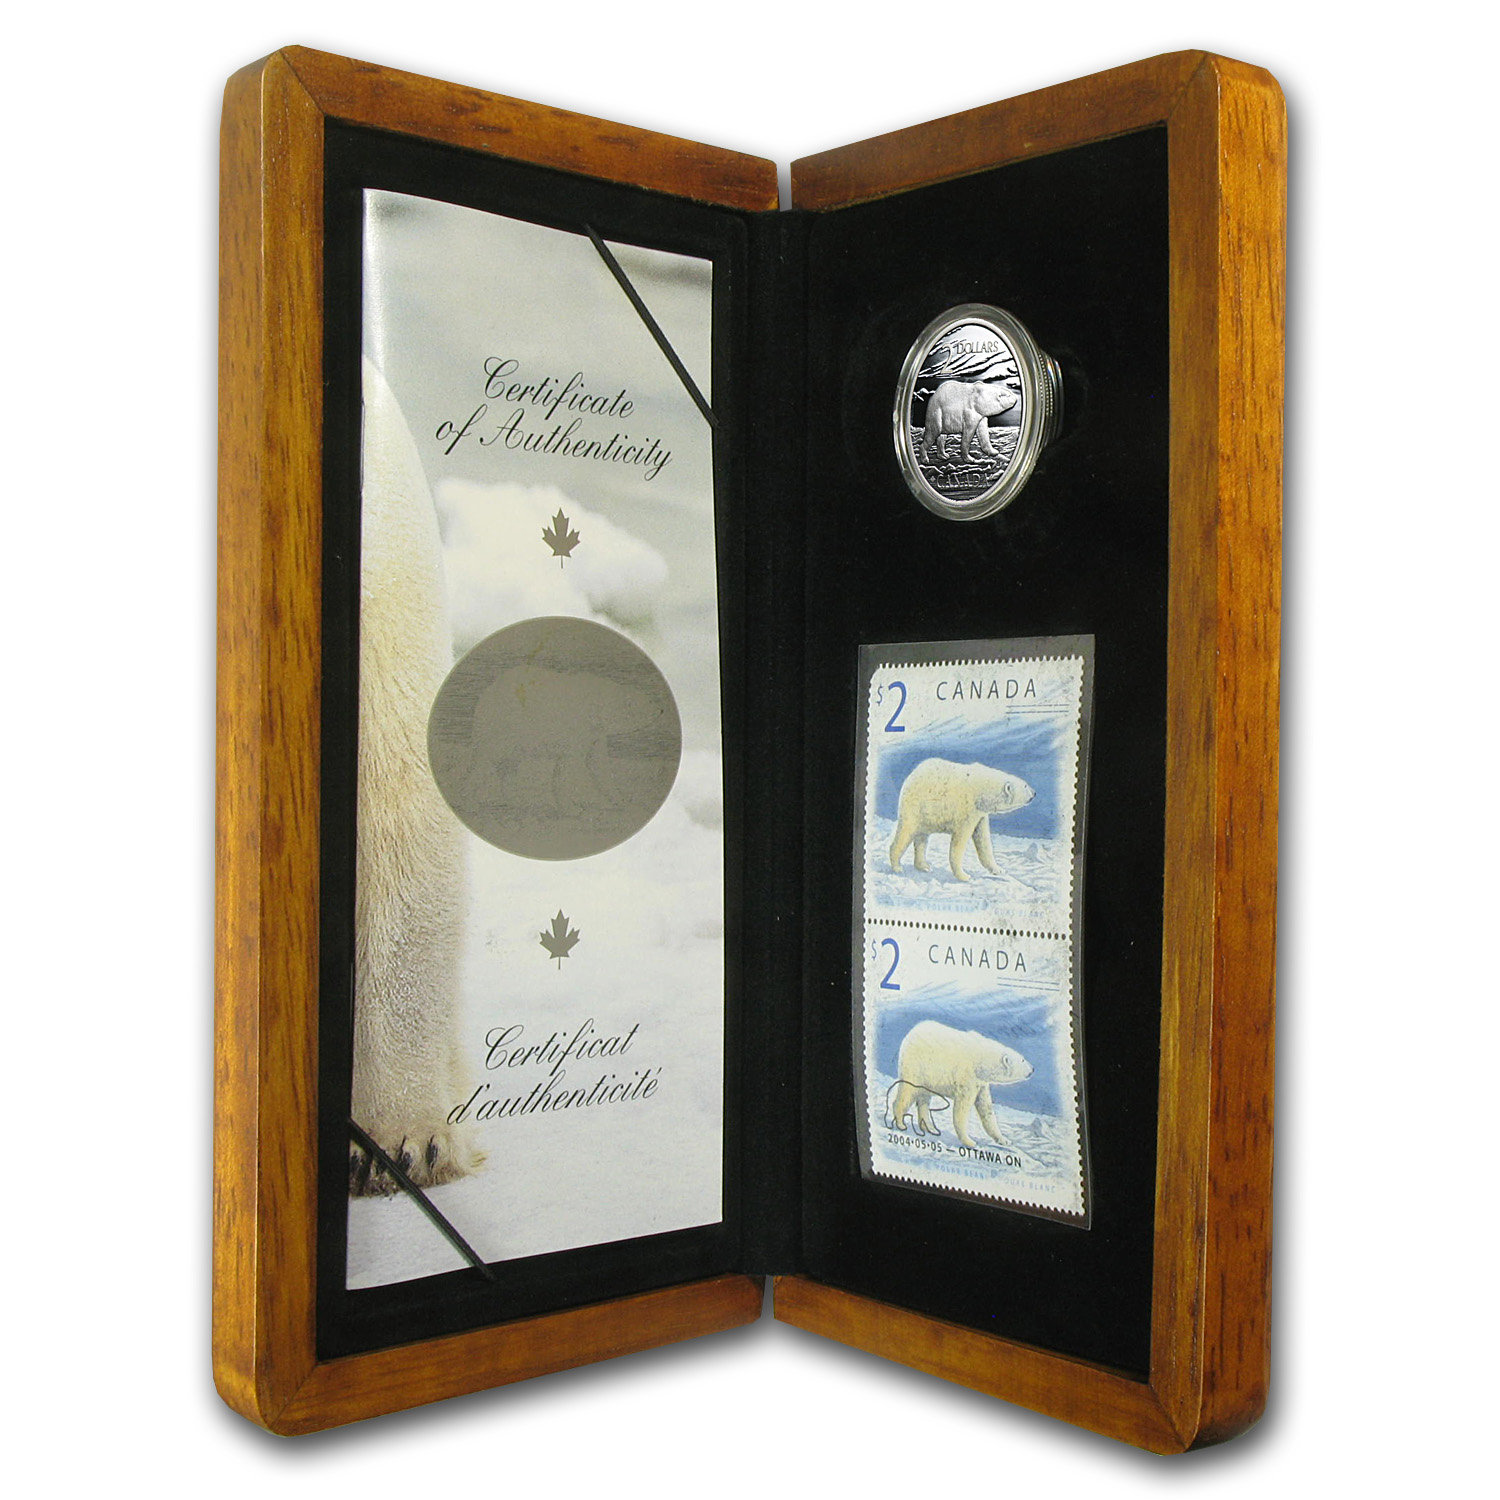 2004 Canada 1/4 oz Silver Polar Bear Coin and Stamp Set